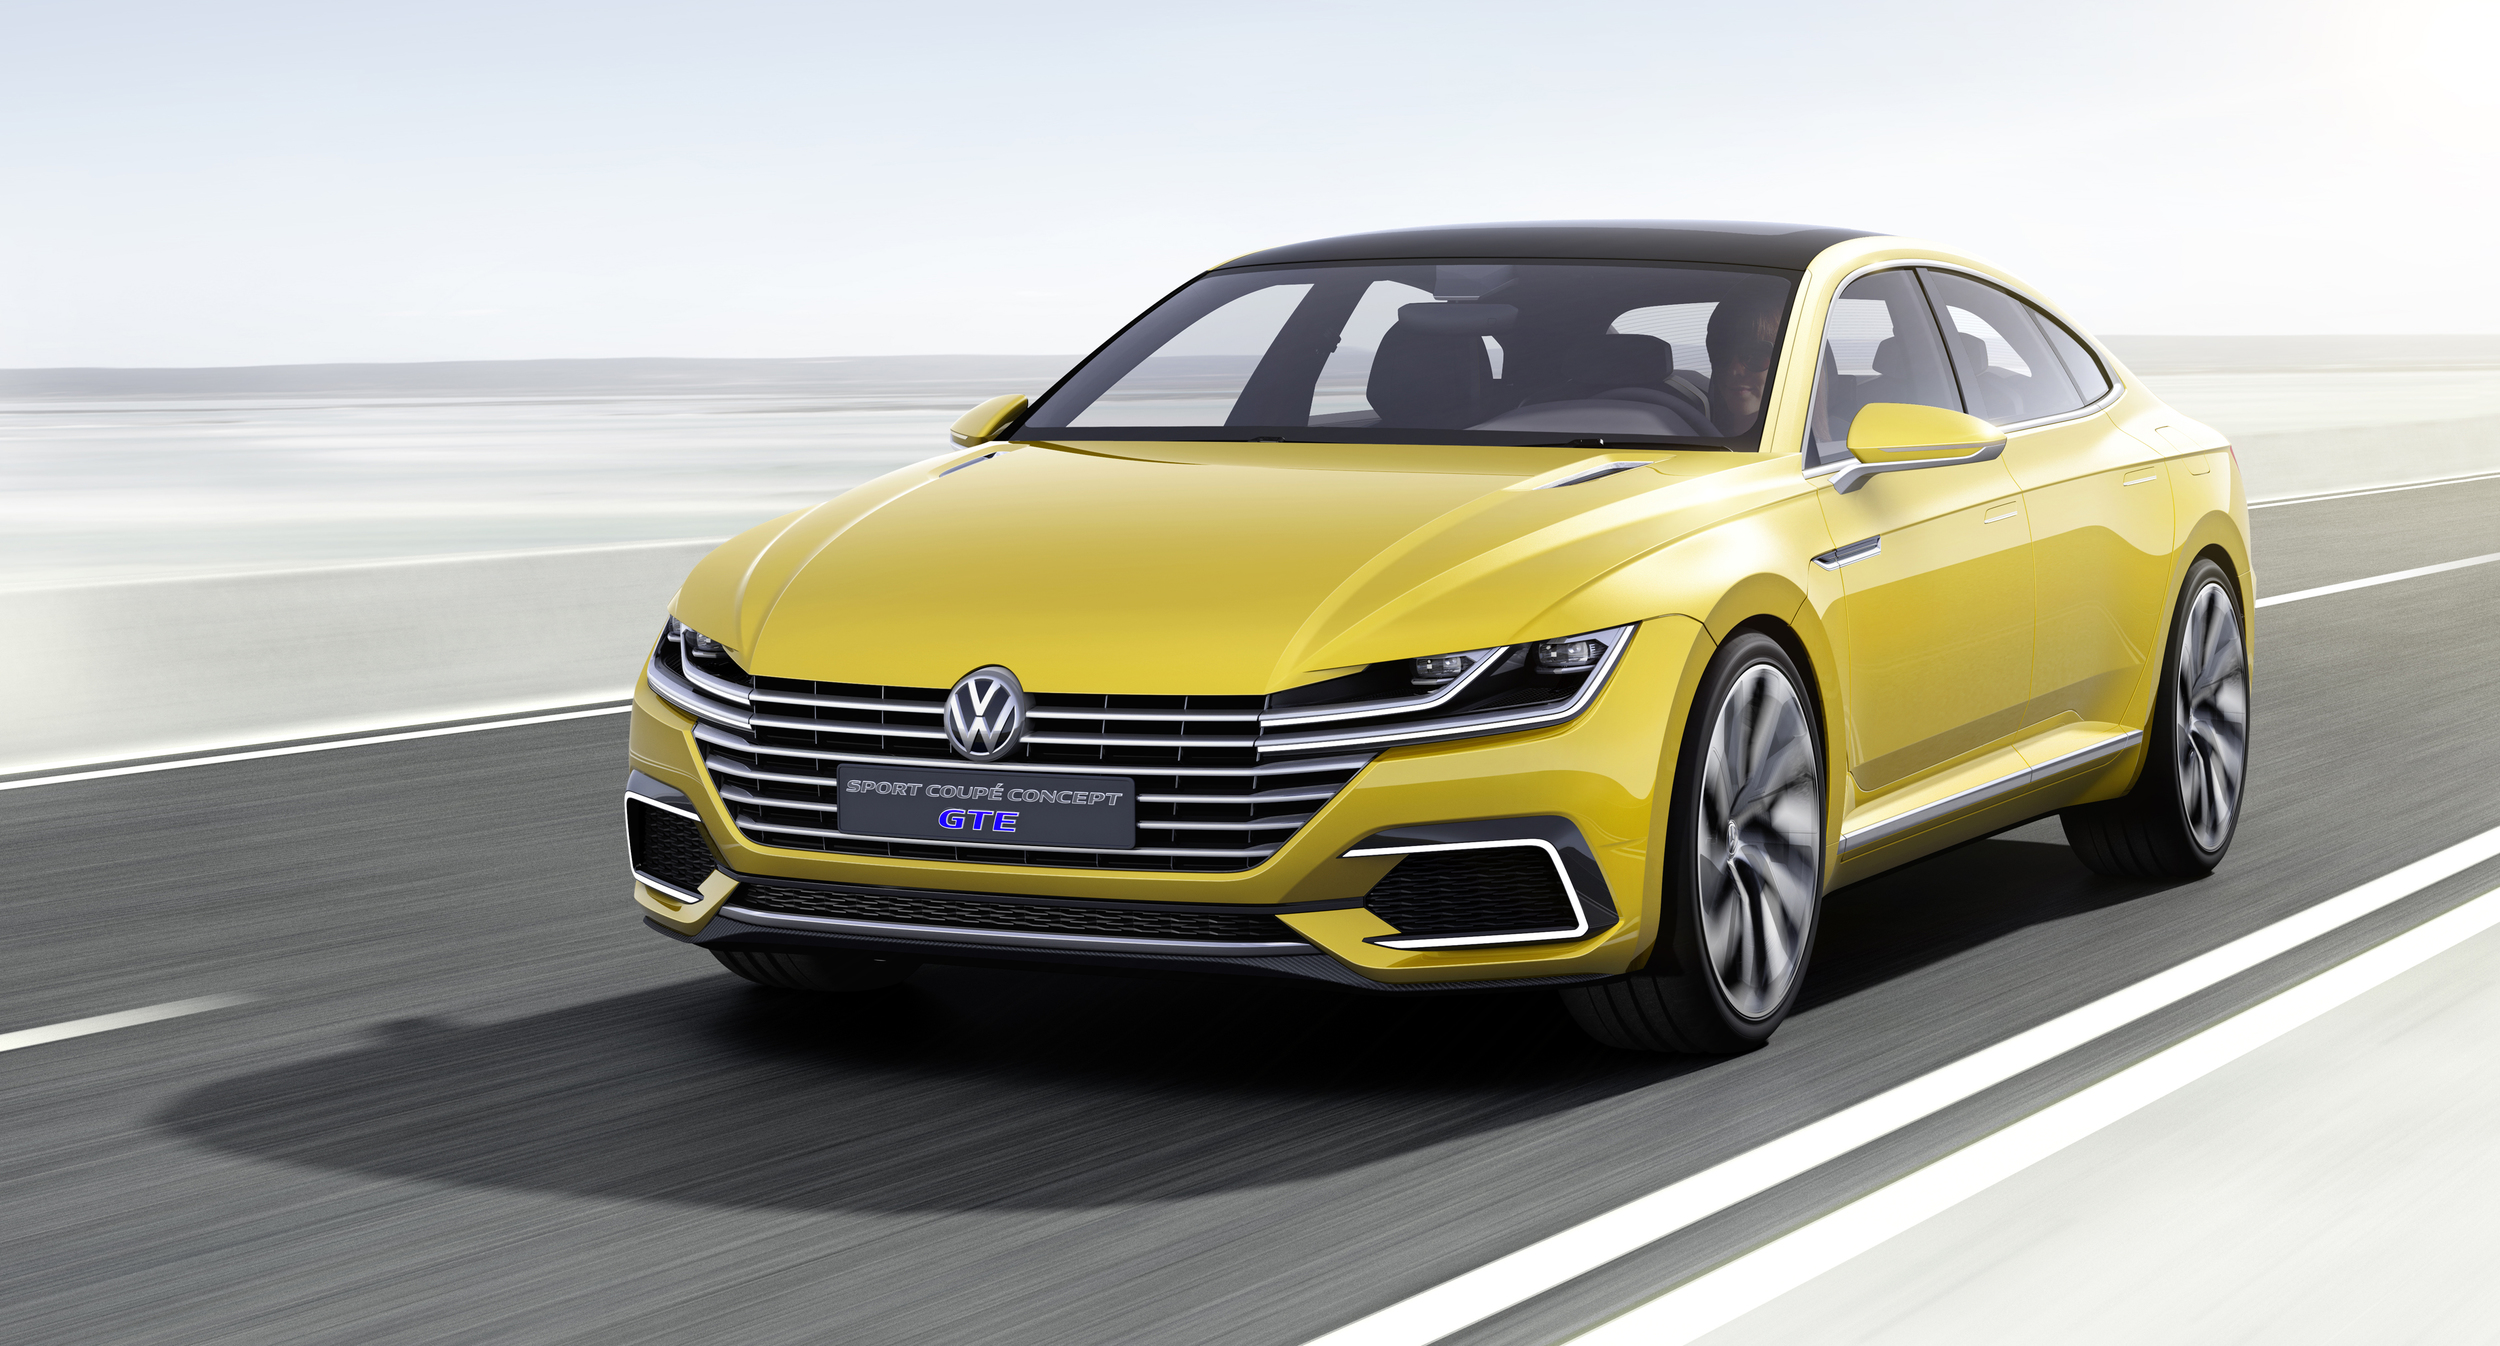 vw-sport-coupe-concept-gte-ext-005-01-1